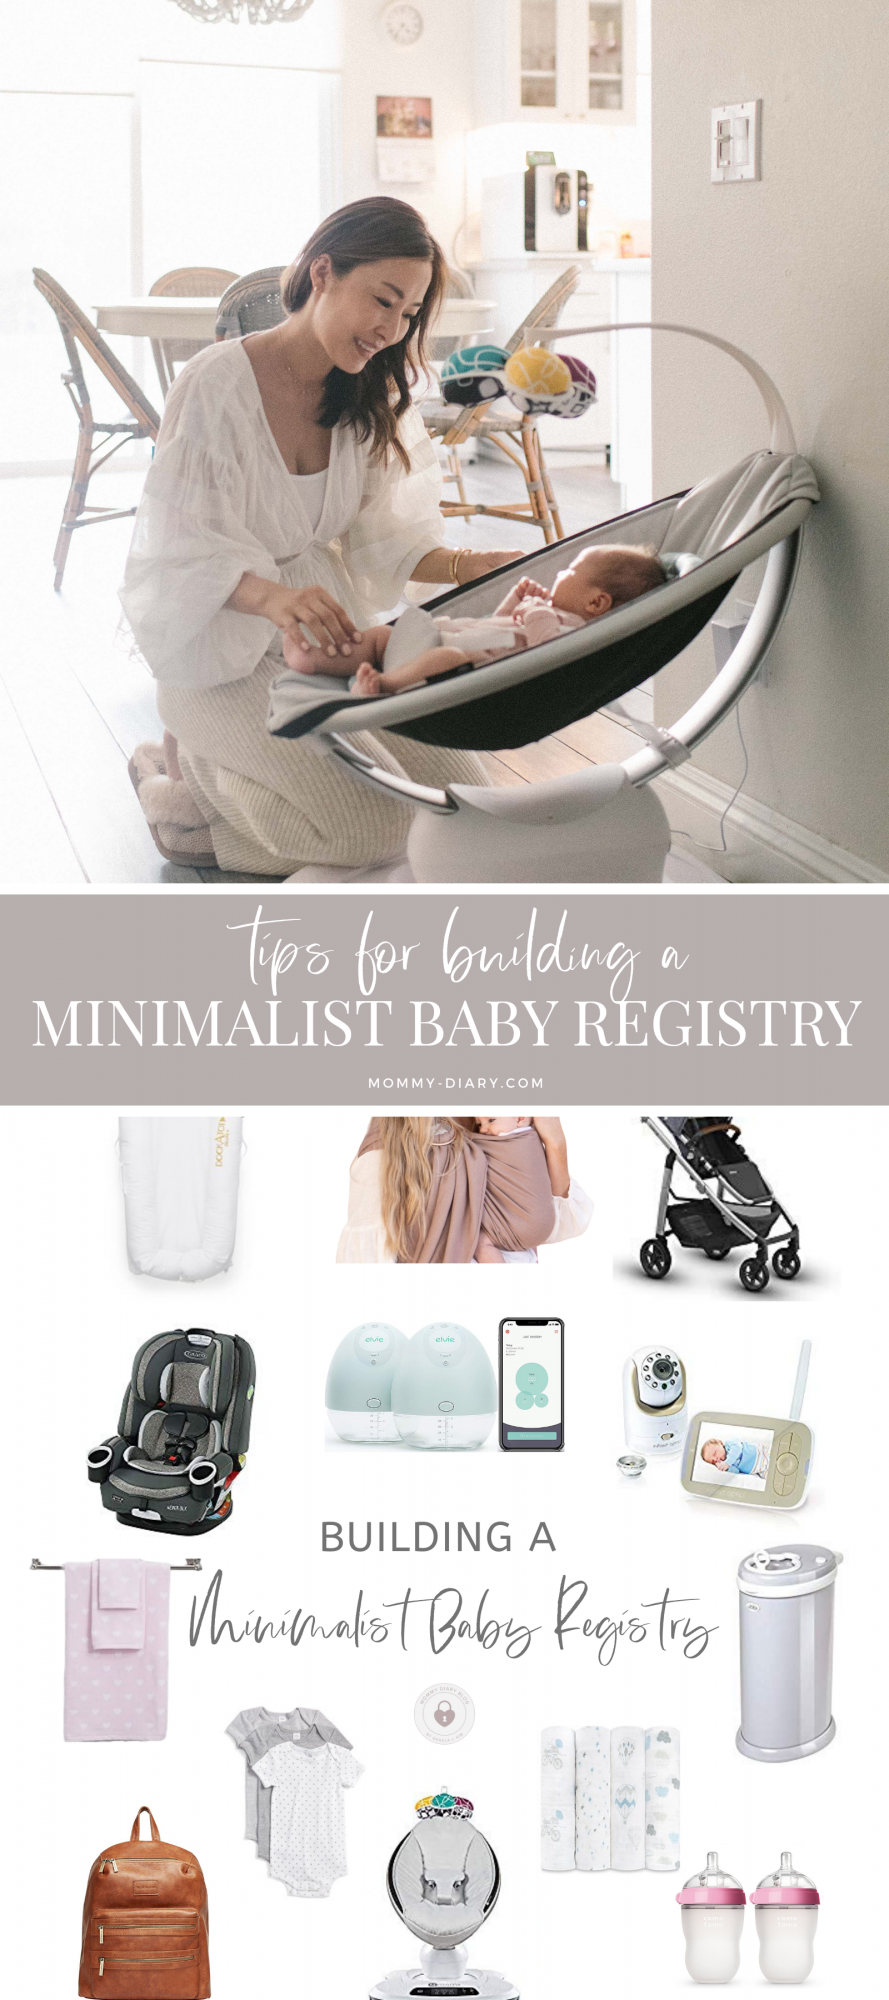 tips for building minimalist baby registry